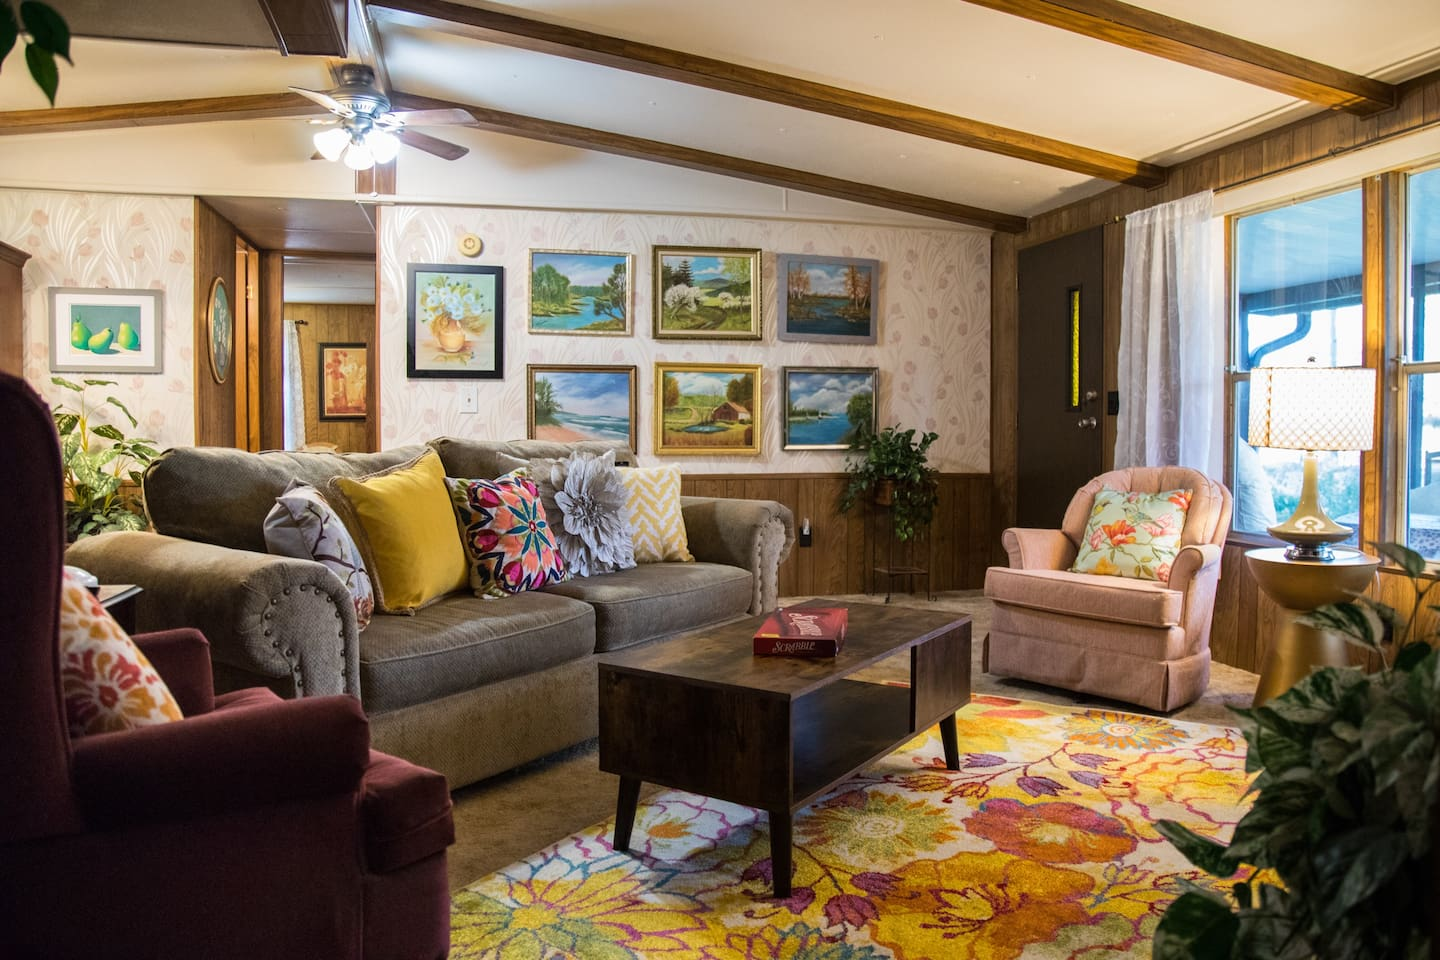 Step into cozy & feel right at home with friends and family, just as if you were at grandma's house. You'll  enjoy Mama Margie's original artwork on the wall behind the sofa. Far enough from the hustle and bustle, but close enough when you want it.